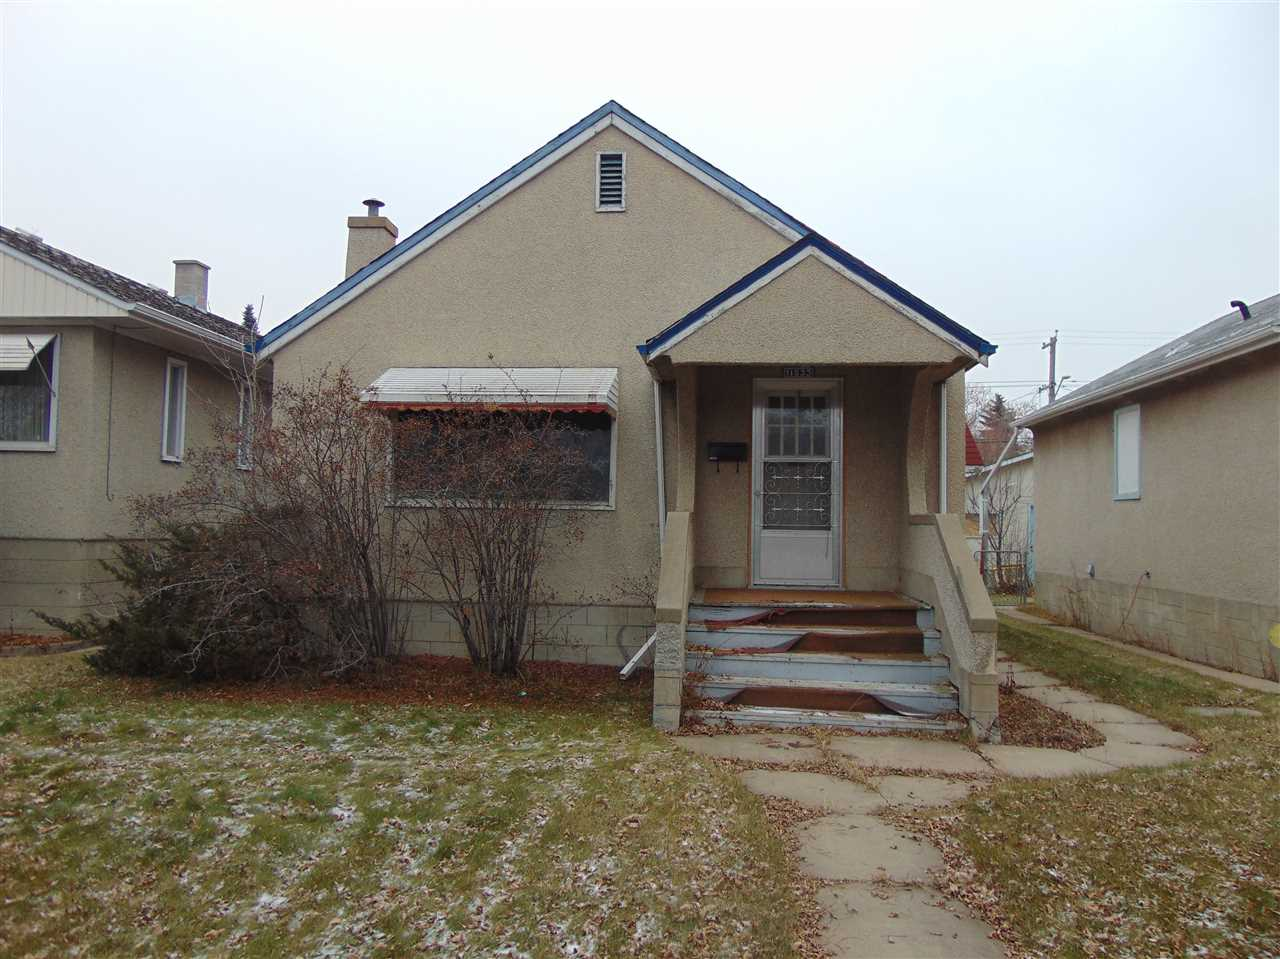 Main Photo: 11633 89 Street in Edmonton: Zone 05 House for sale : MLS® # E4075017